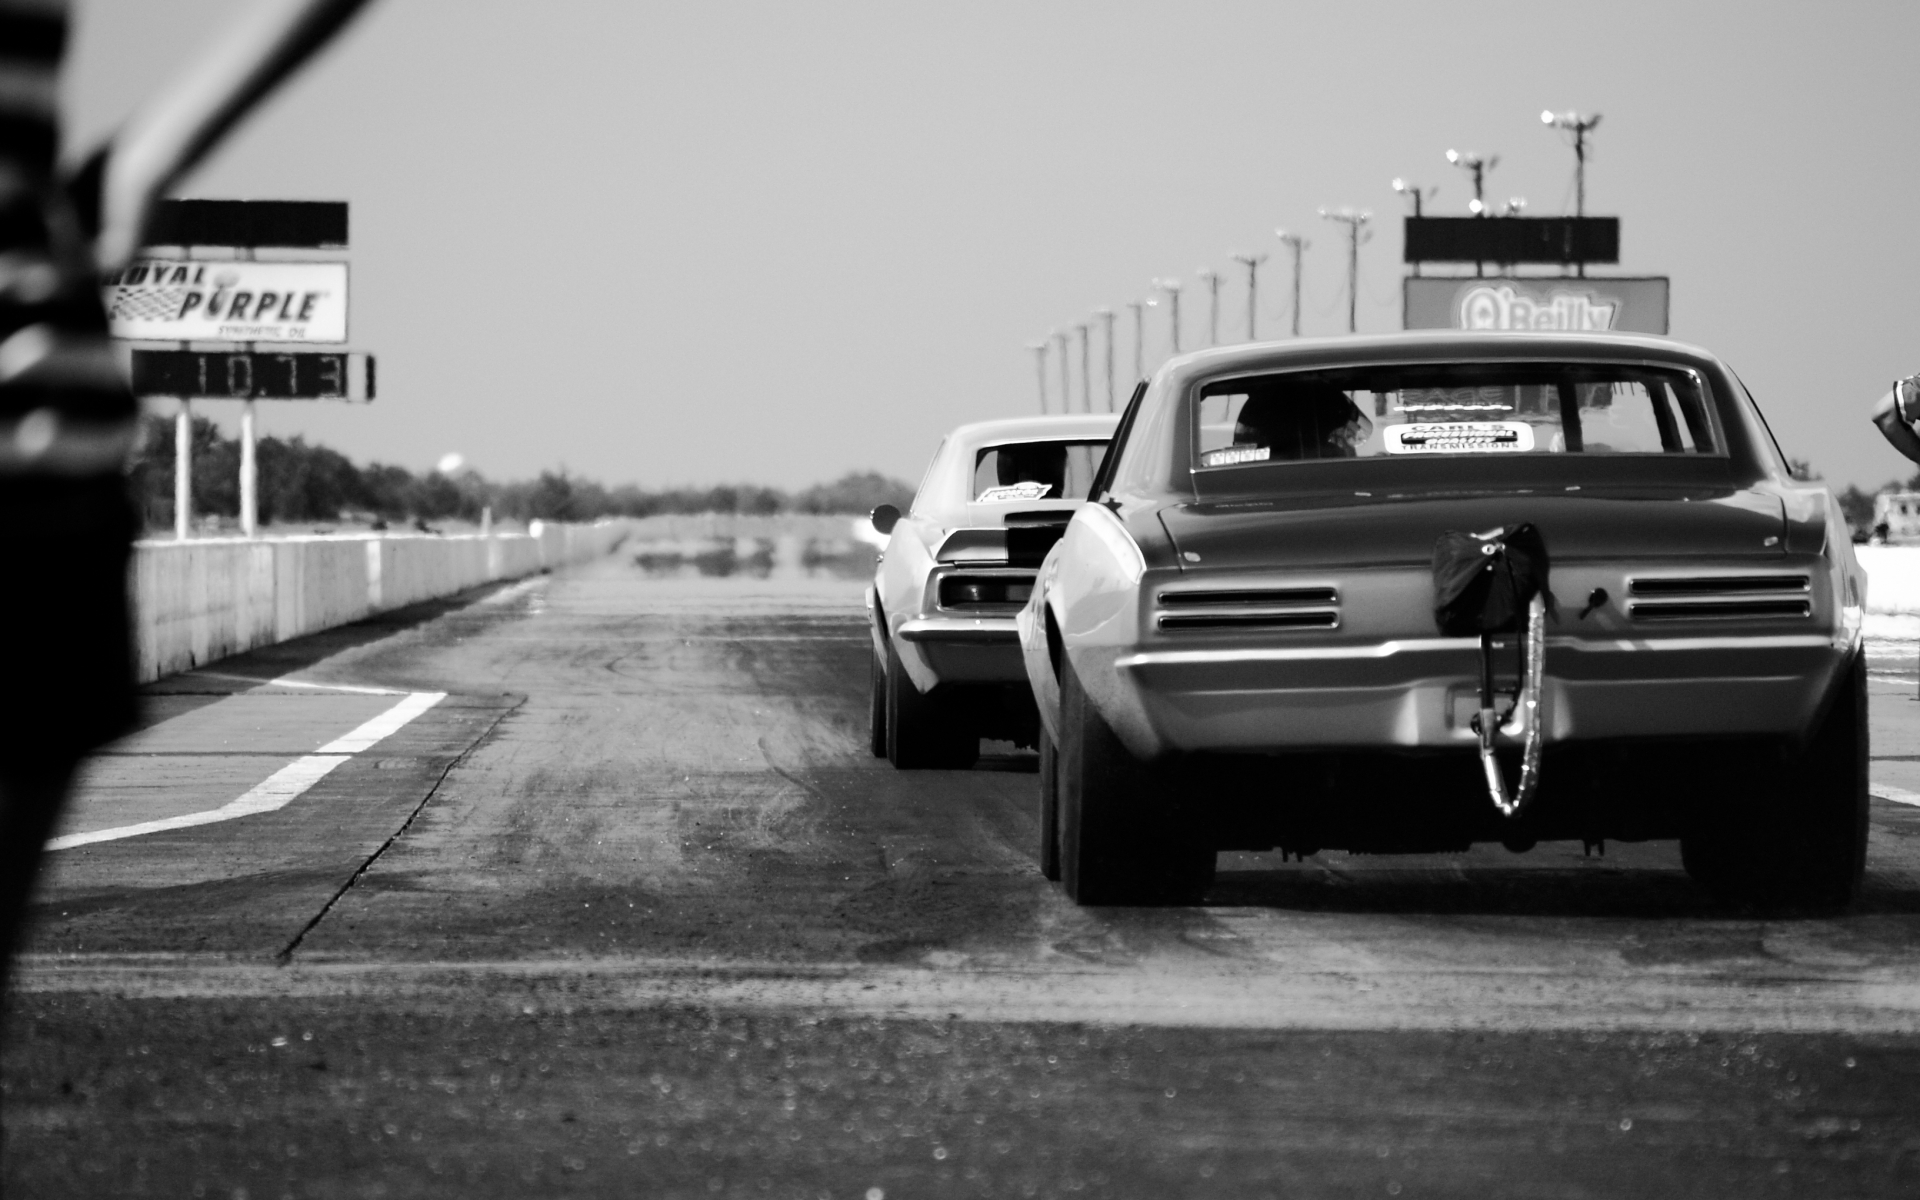 Black And White Wallpaper Iphone 6 Plus Drag Racing Full Hd Wallpaper And Background Image